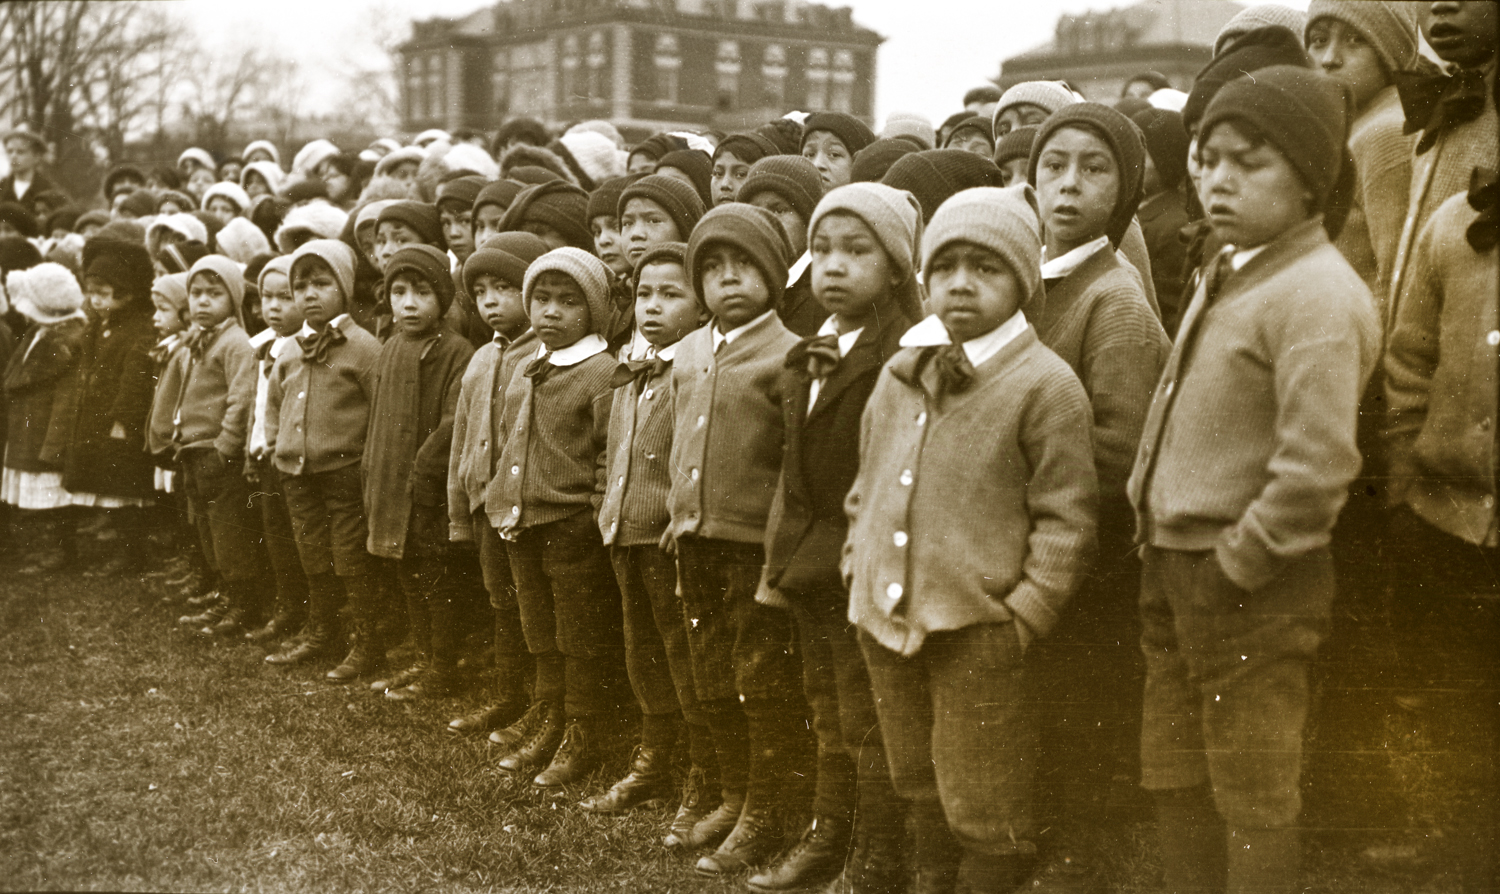 Thomas Indian School Children at Flag Raising Ceremony, November 28, 1913. Photograph by Joseph Dixon. Courtesy of the Mathers Museum of World Cultures, Wanamaker Collection, Indiana University, Bloomington, I.N., W-4312.